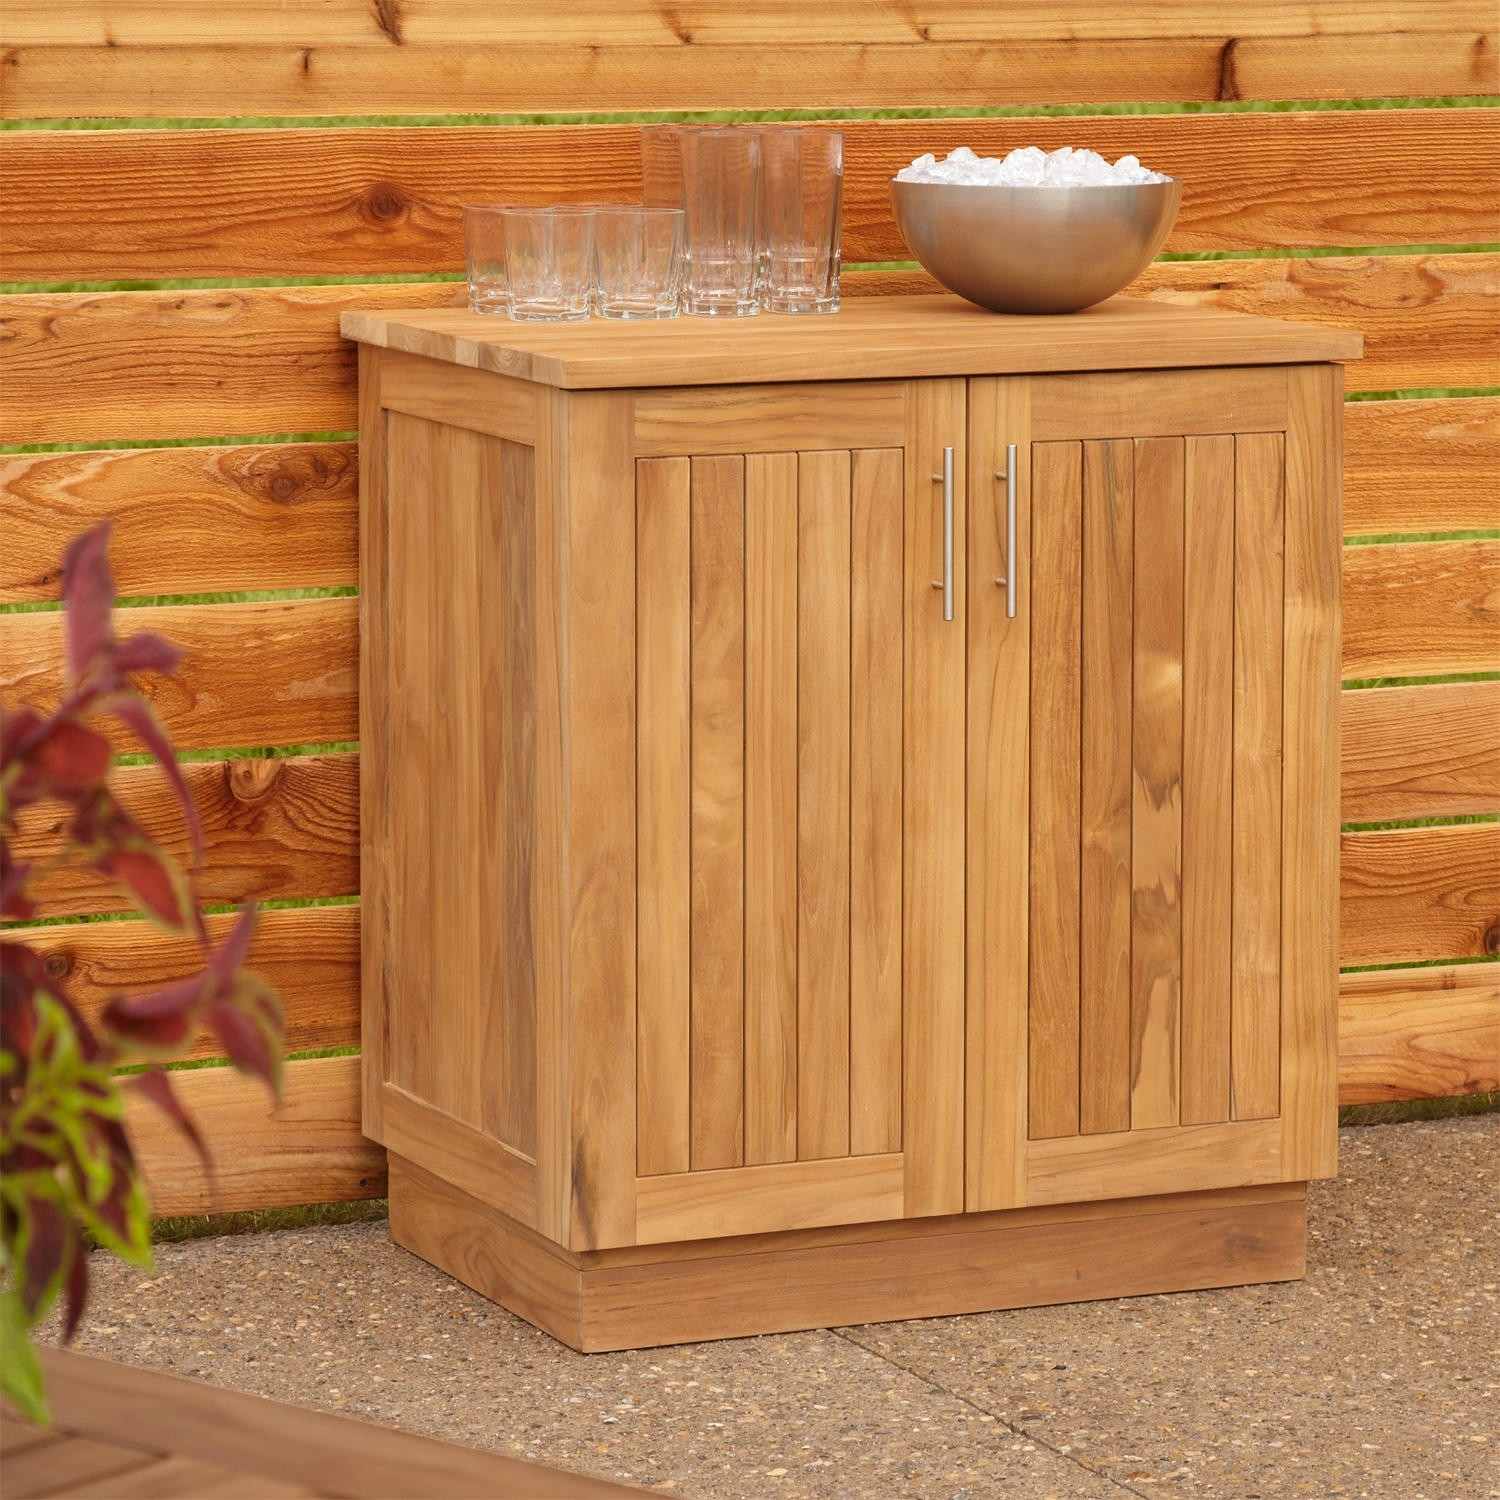 Teak Storage Cabinet Outdoor